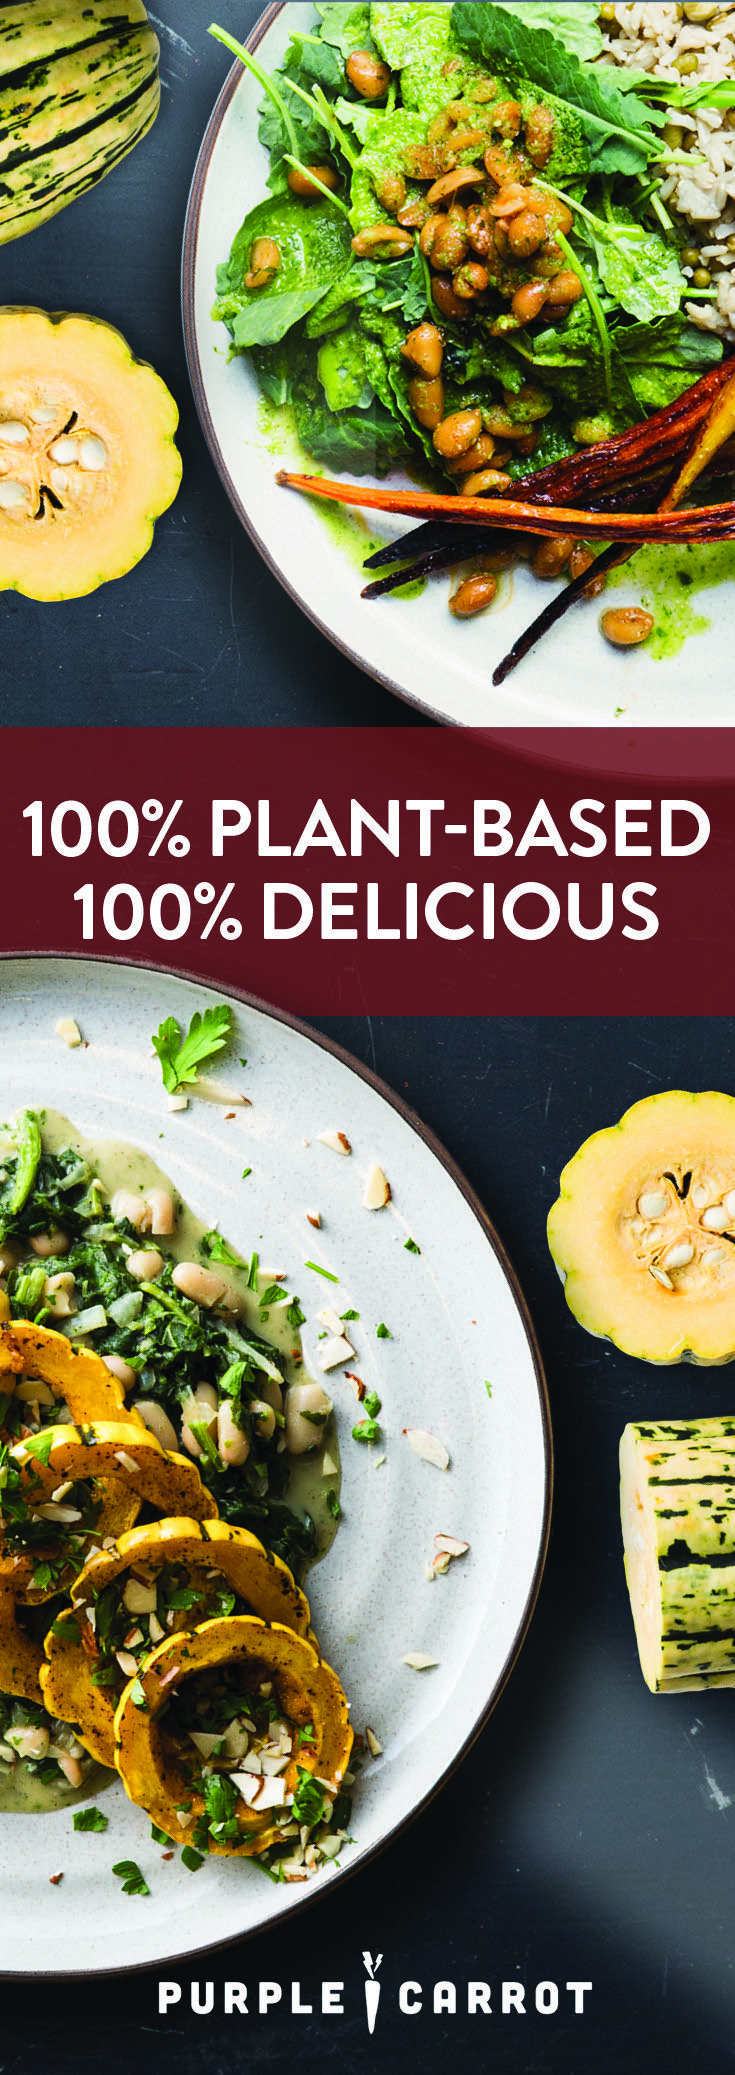 Cook nutritious, 100% plant-based meals. Fresh ingredients delivered each week.